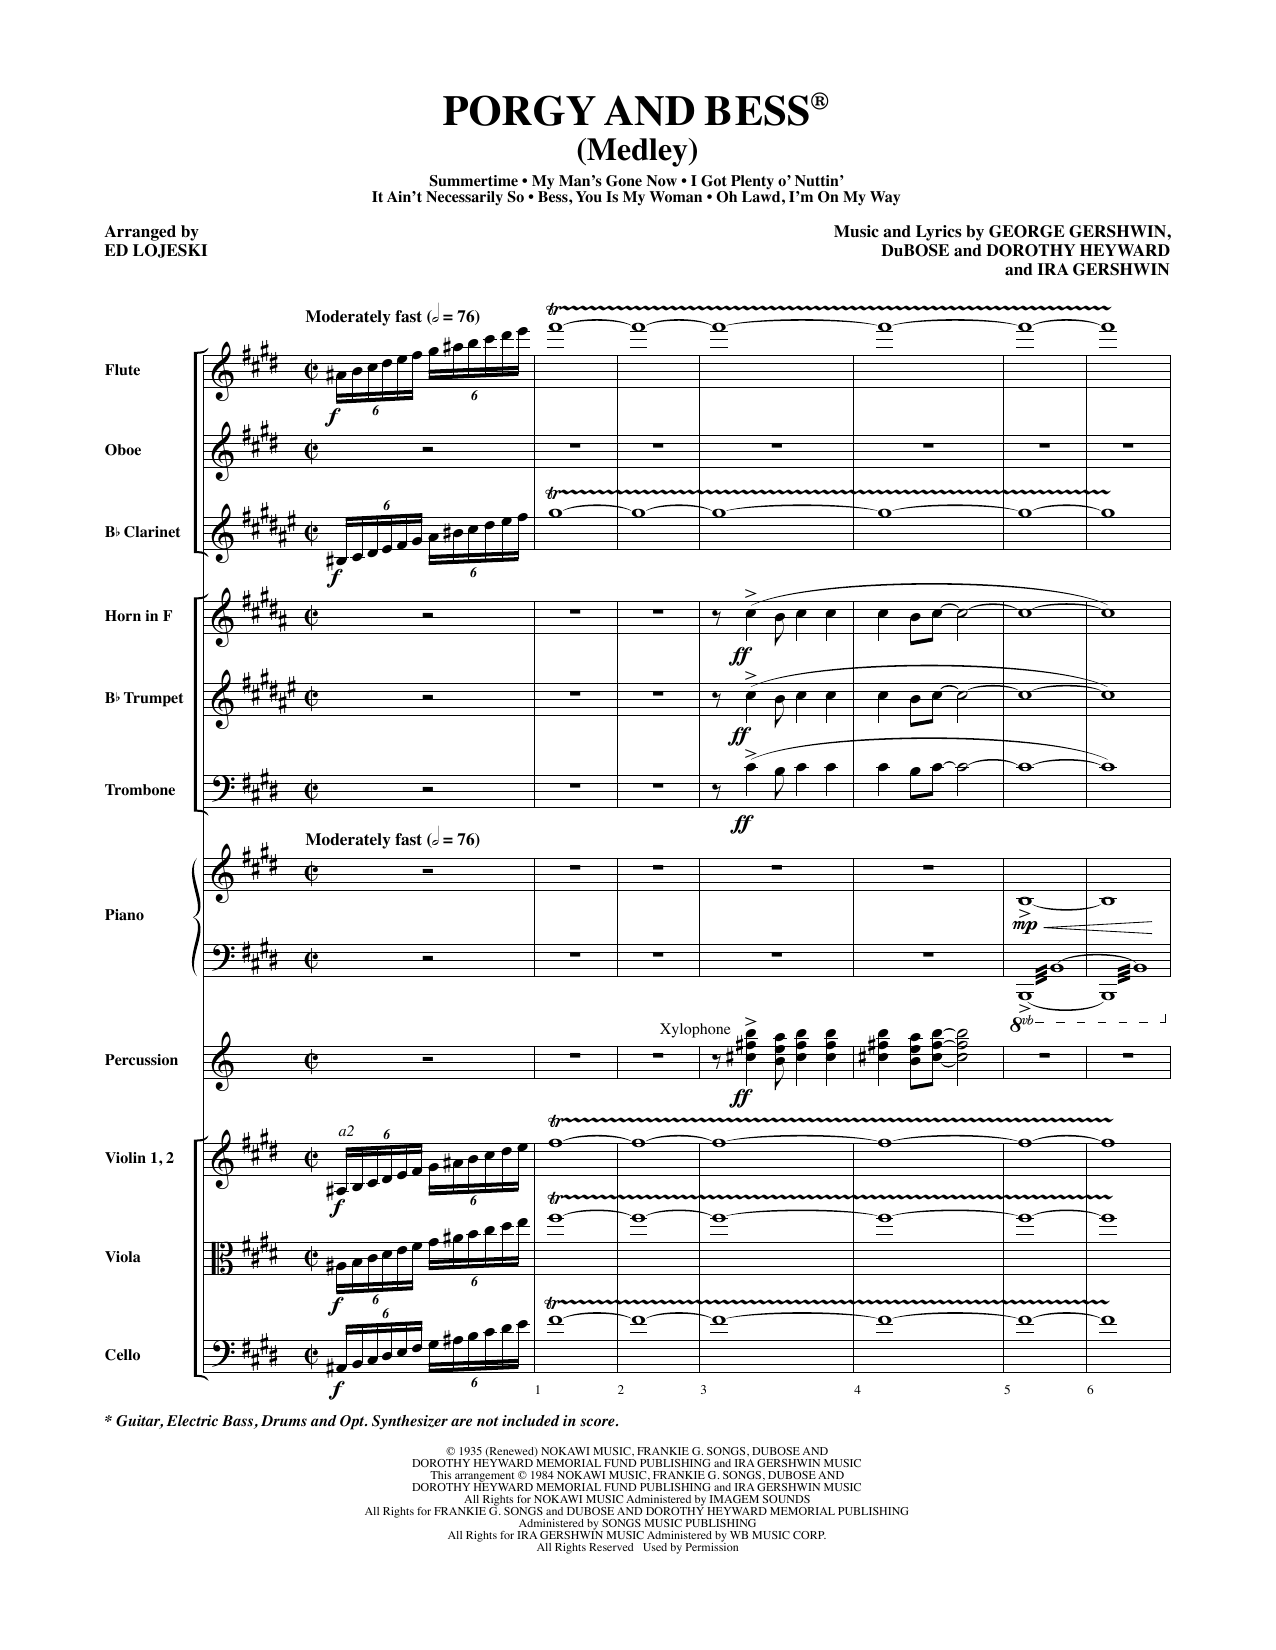 Porgy and Bess (Medley) - Full Score Partition Digitale